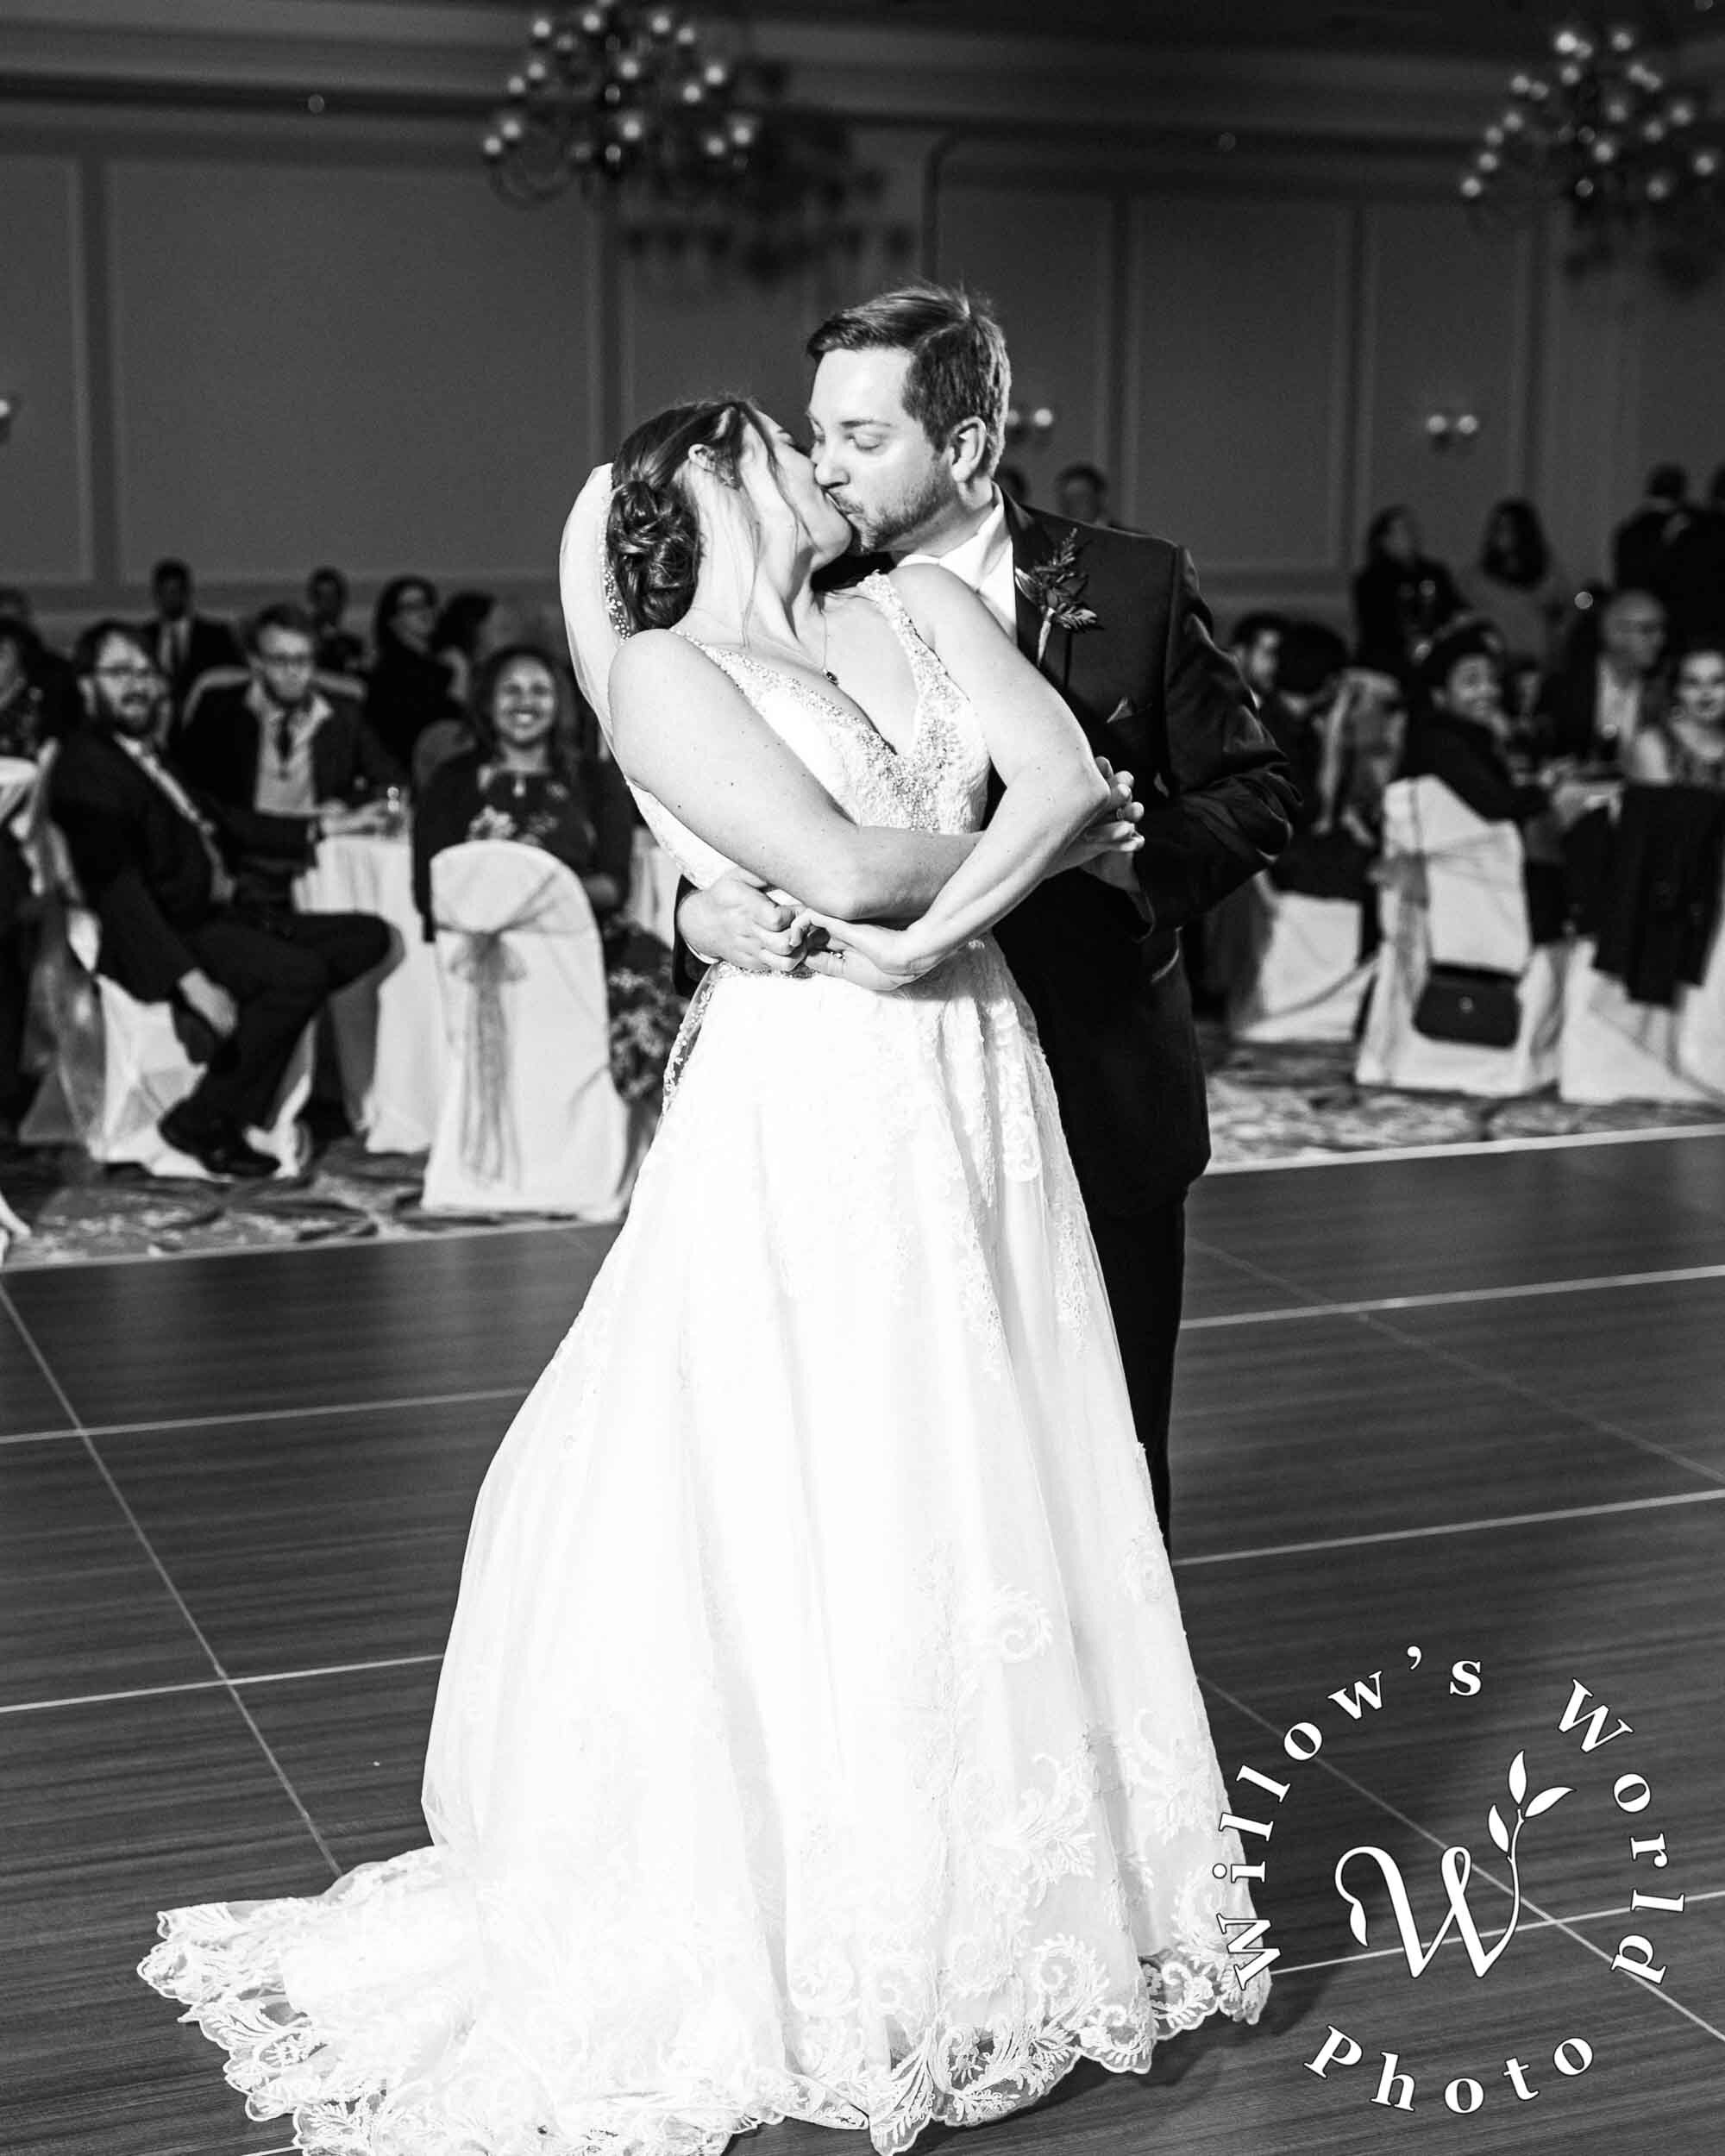 89-Hampton-Inn-Convention-Center-New-Orleans-Wedding-Reception-Photo-Willows-World-Photo.jpg